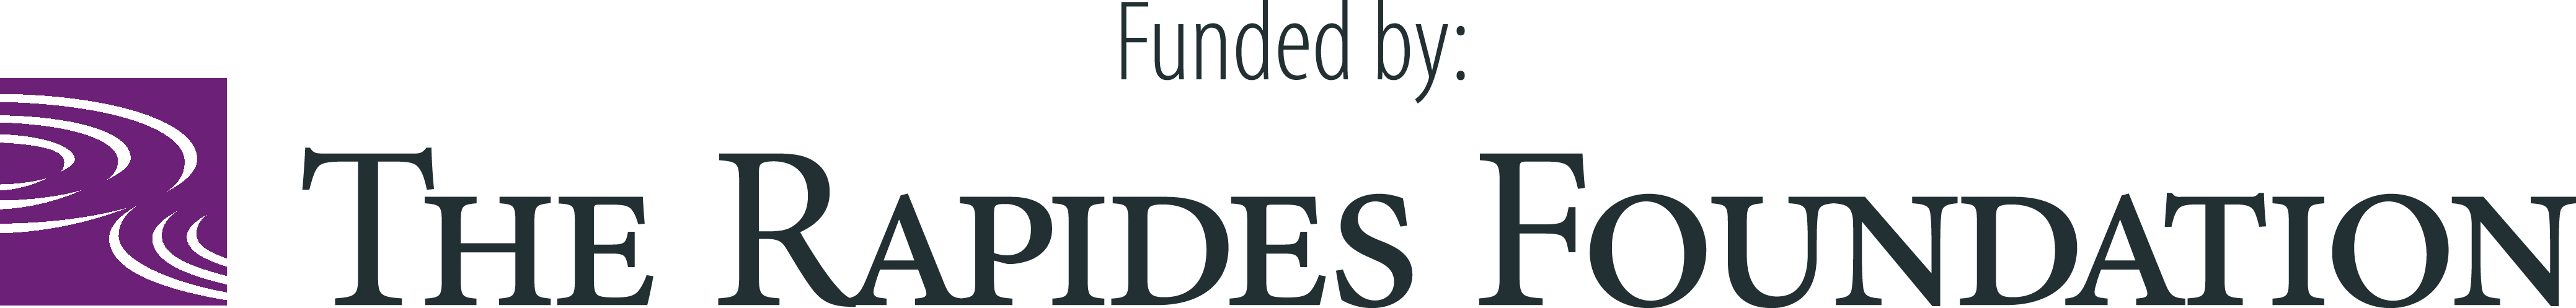 The Rapides Foundation > Brand Guidelines